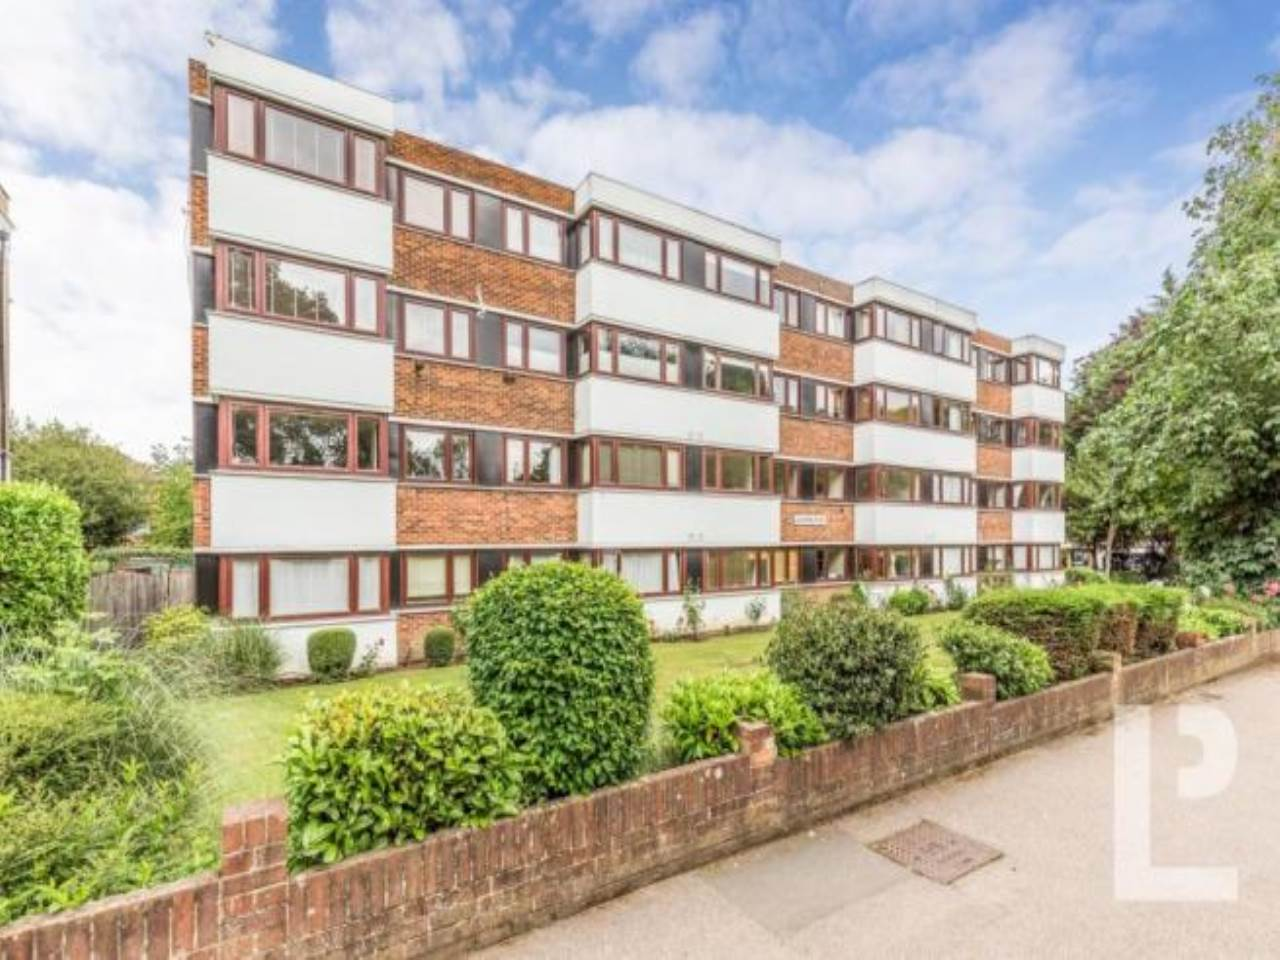 2 bed apartment for sale in South Woodford , E18